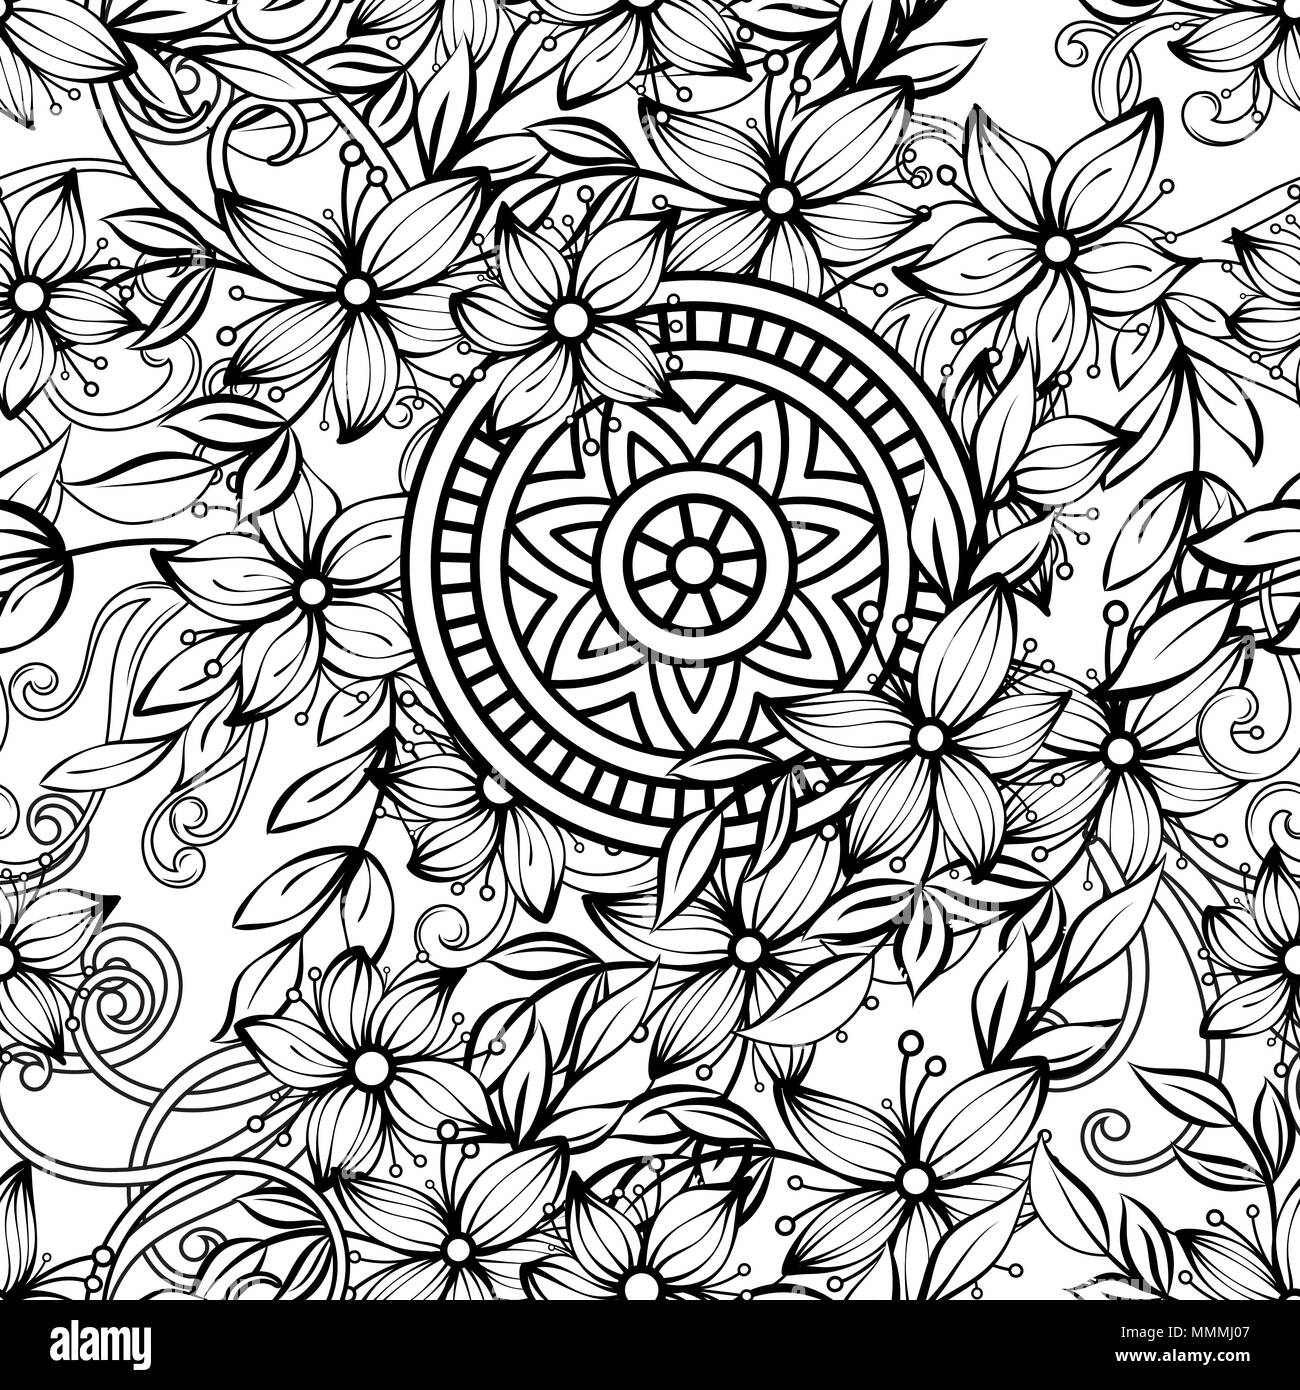 Floral seamless pattern in black and white. Adult coloring book page ...